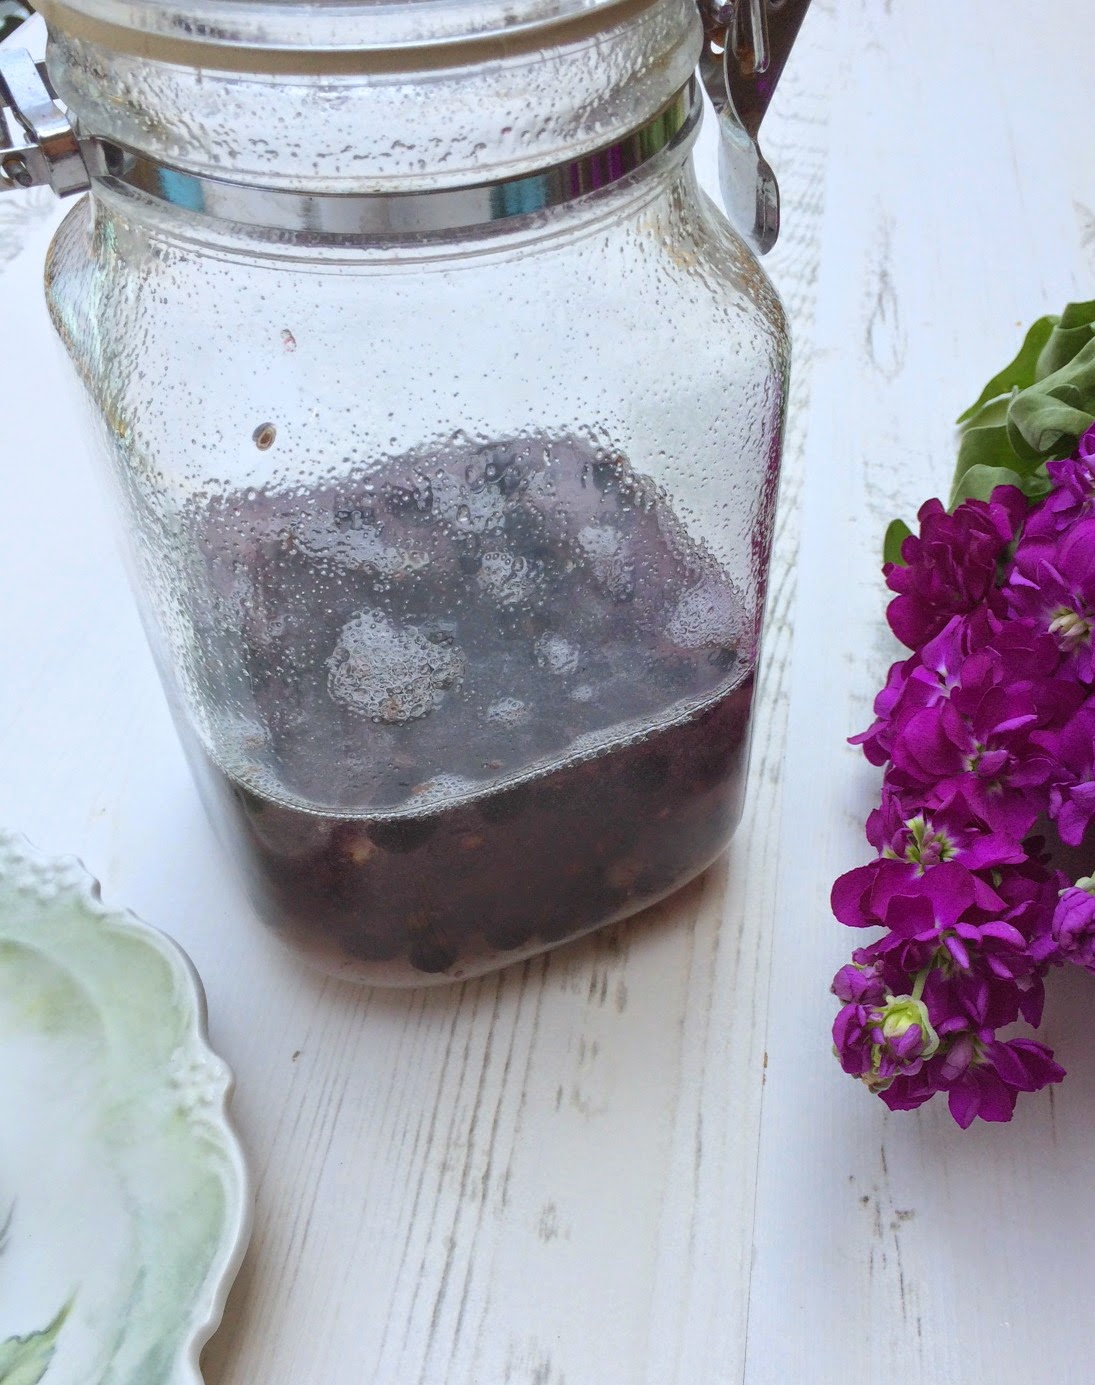 How to make Cassis with vodka